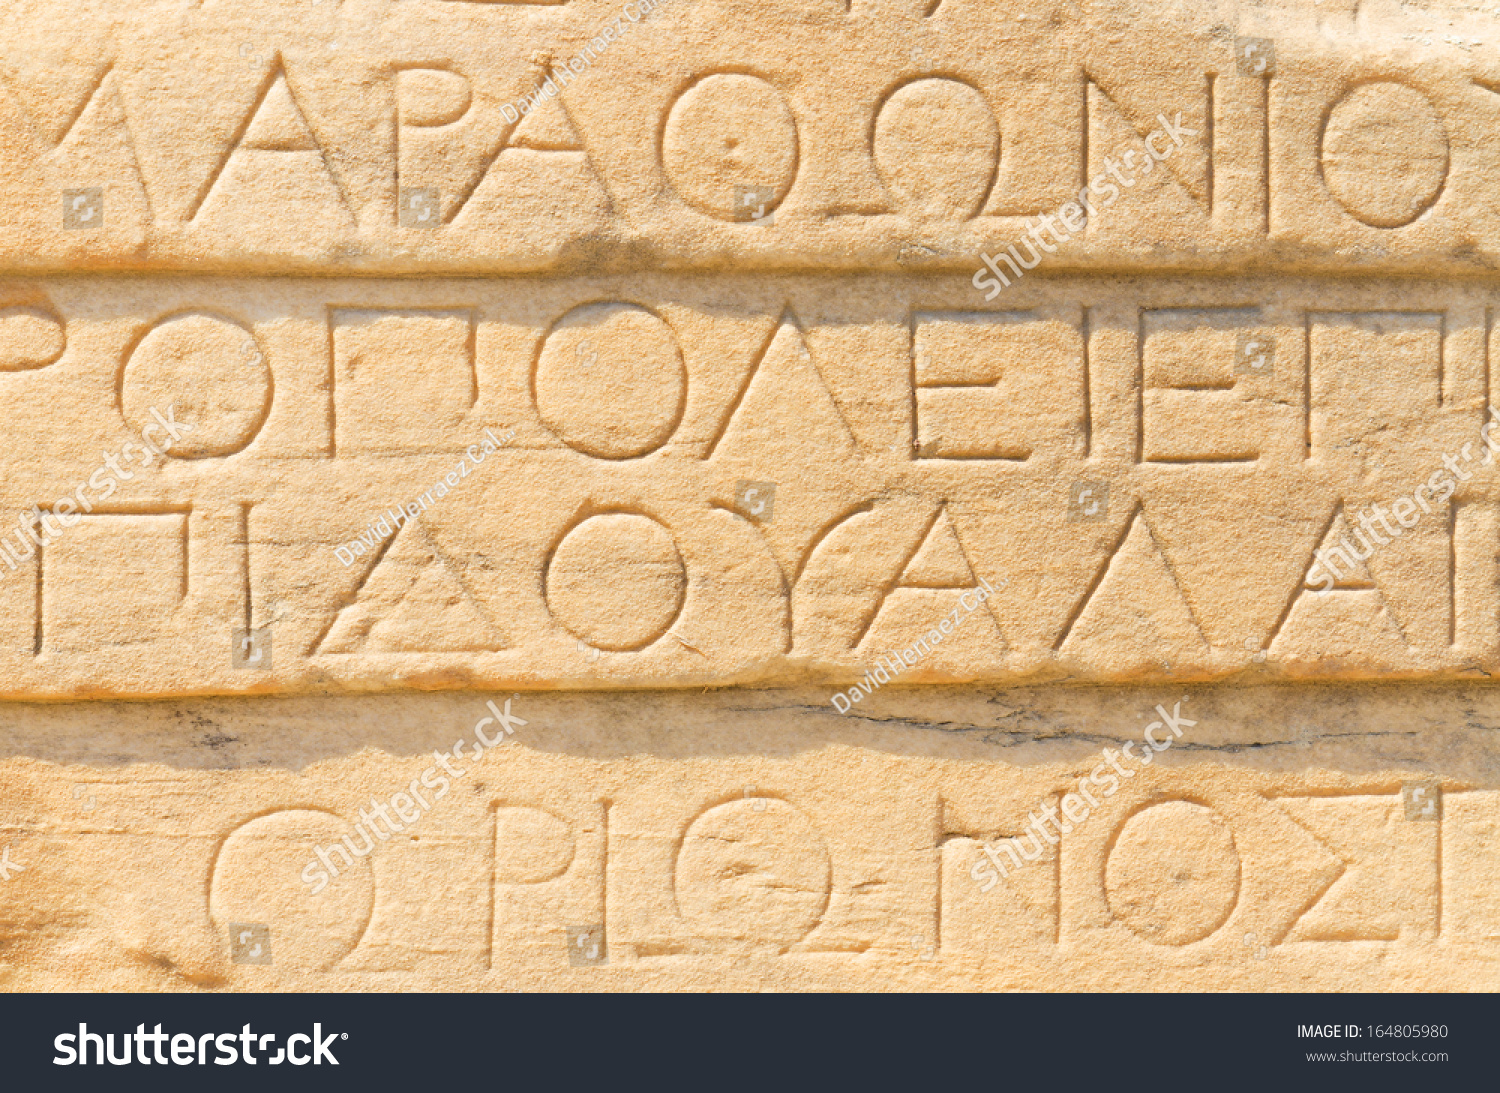 Ancient Greek Writing On Stone Stock Photo 164805980